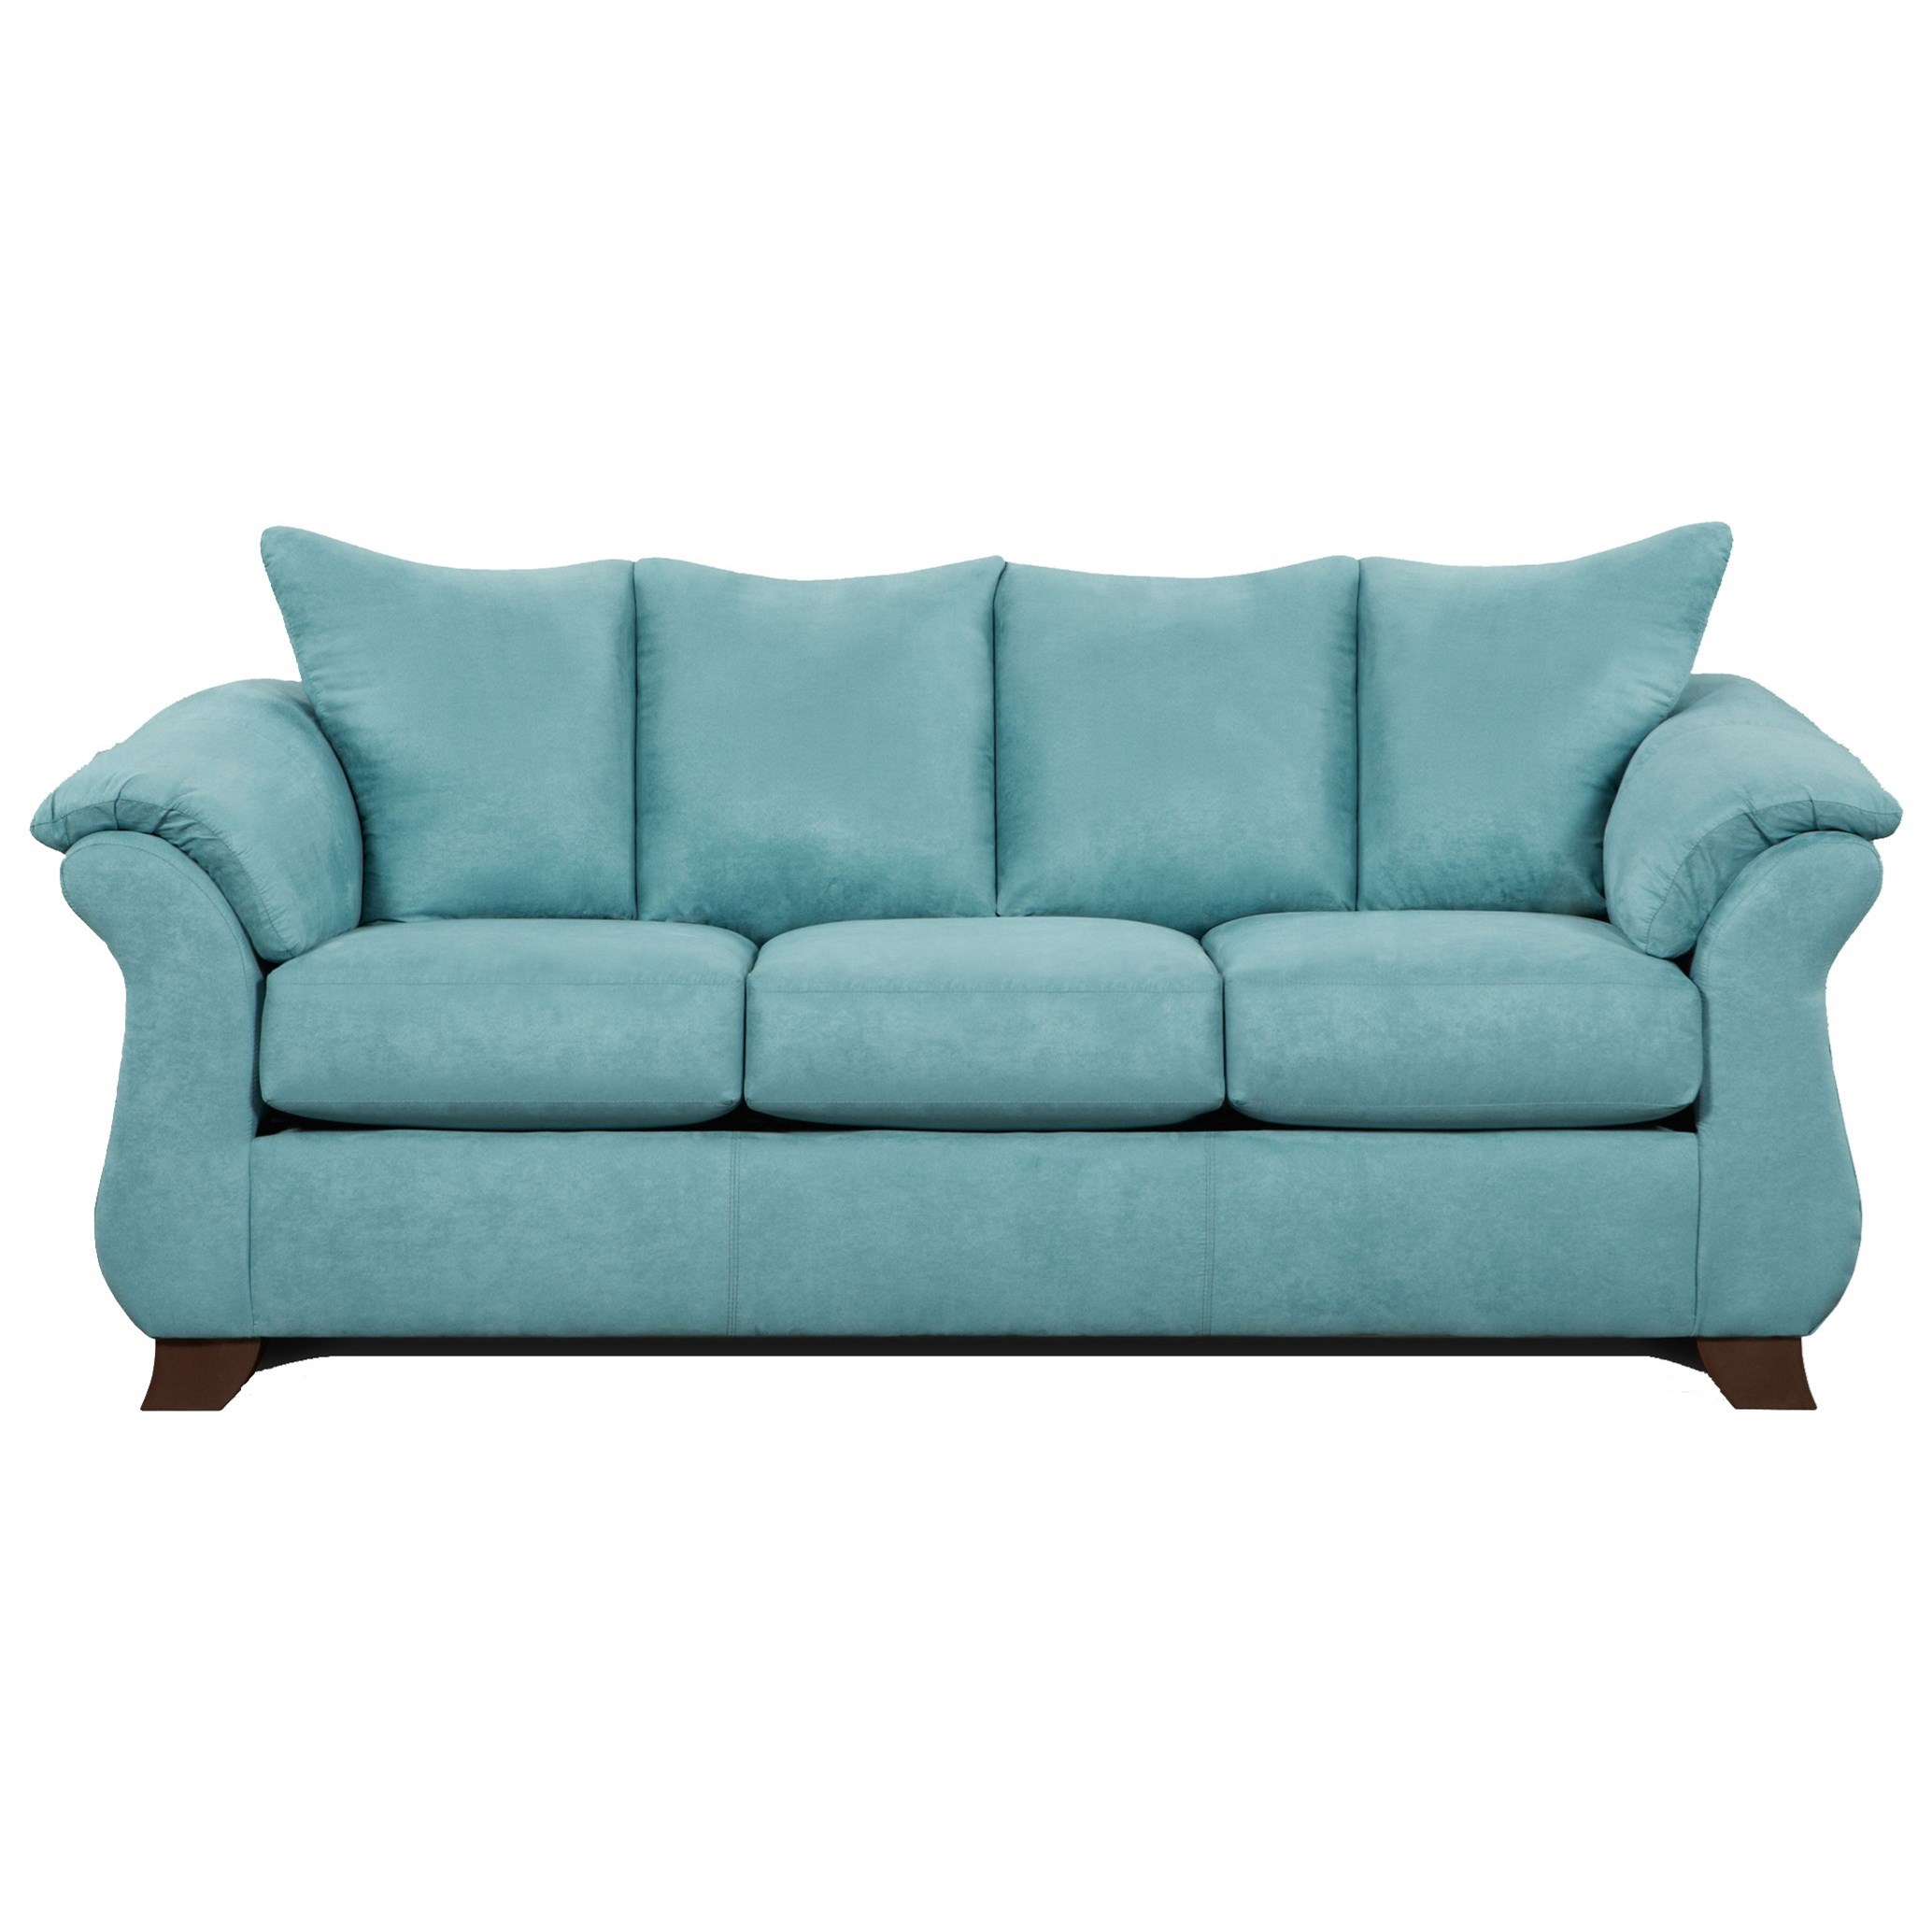 Affordable Furniture 6700 Queen Sleeper Sofa - Item Number: 6704 Sensations Capri